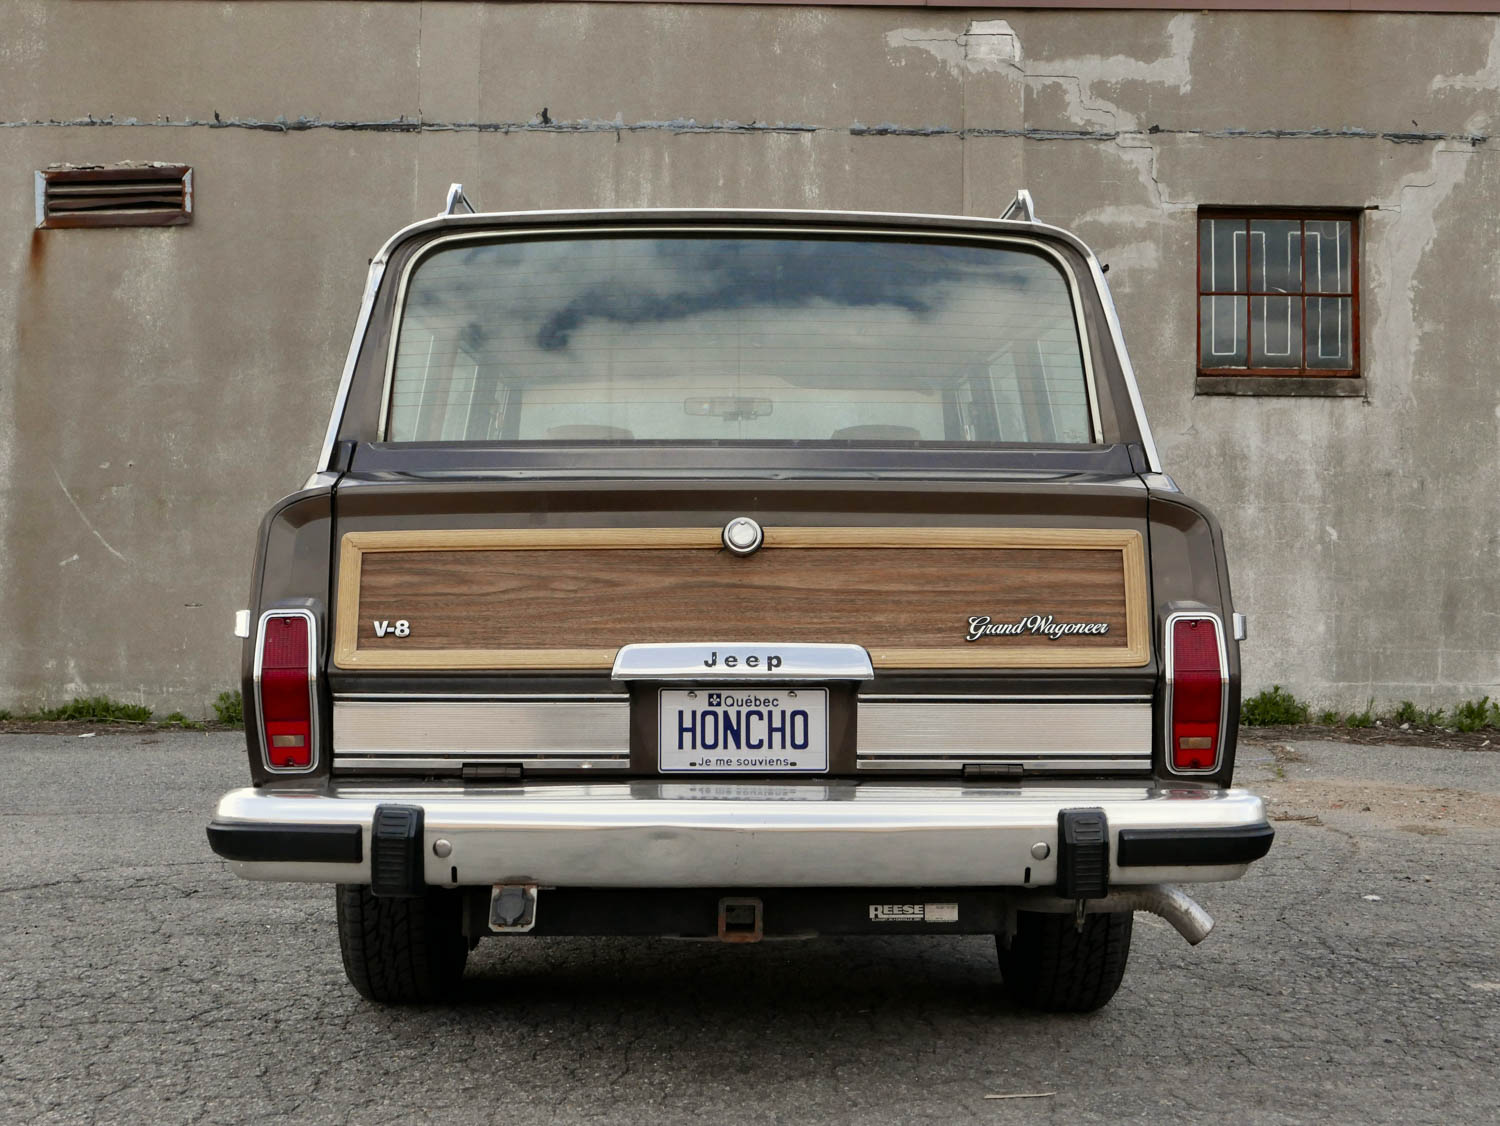 1987 Jeep Grand Wagoneer rear